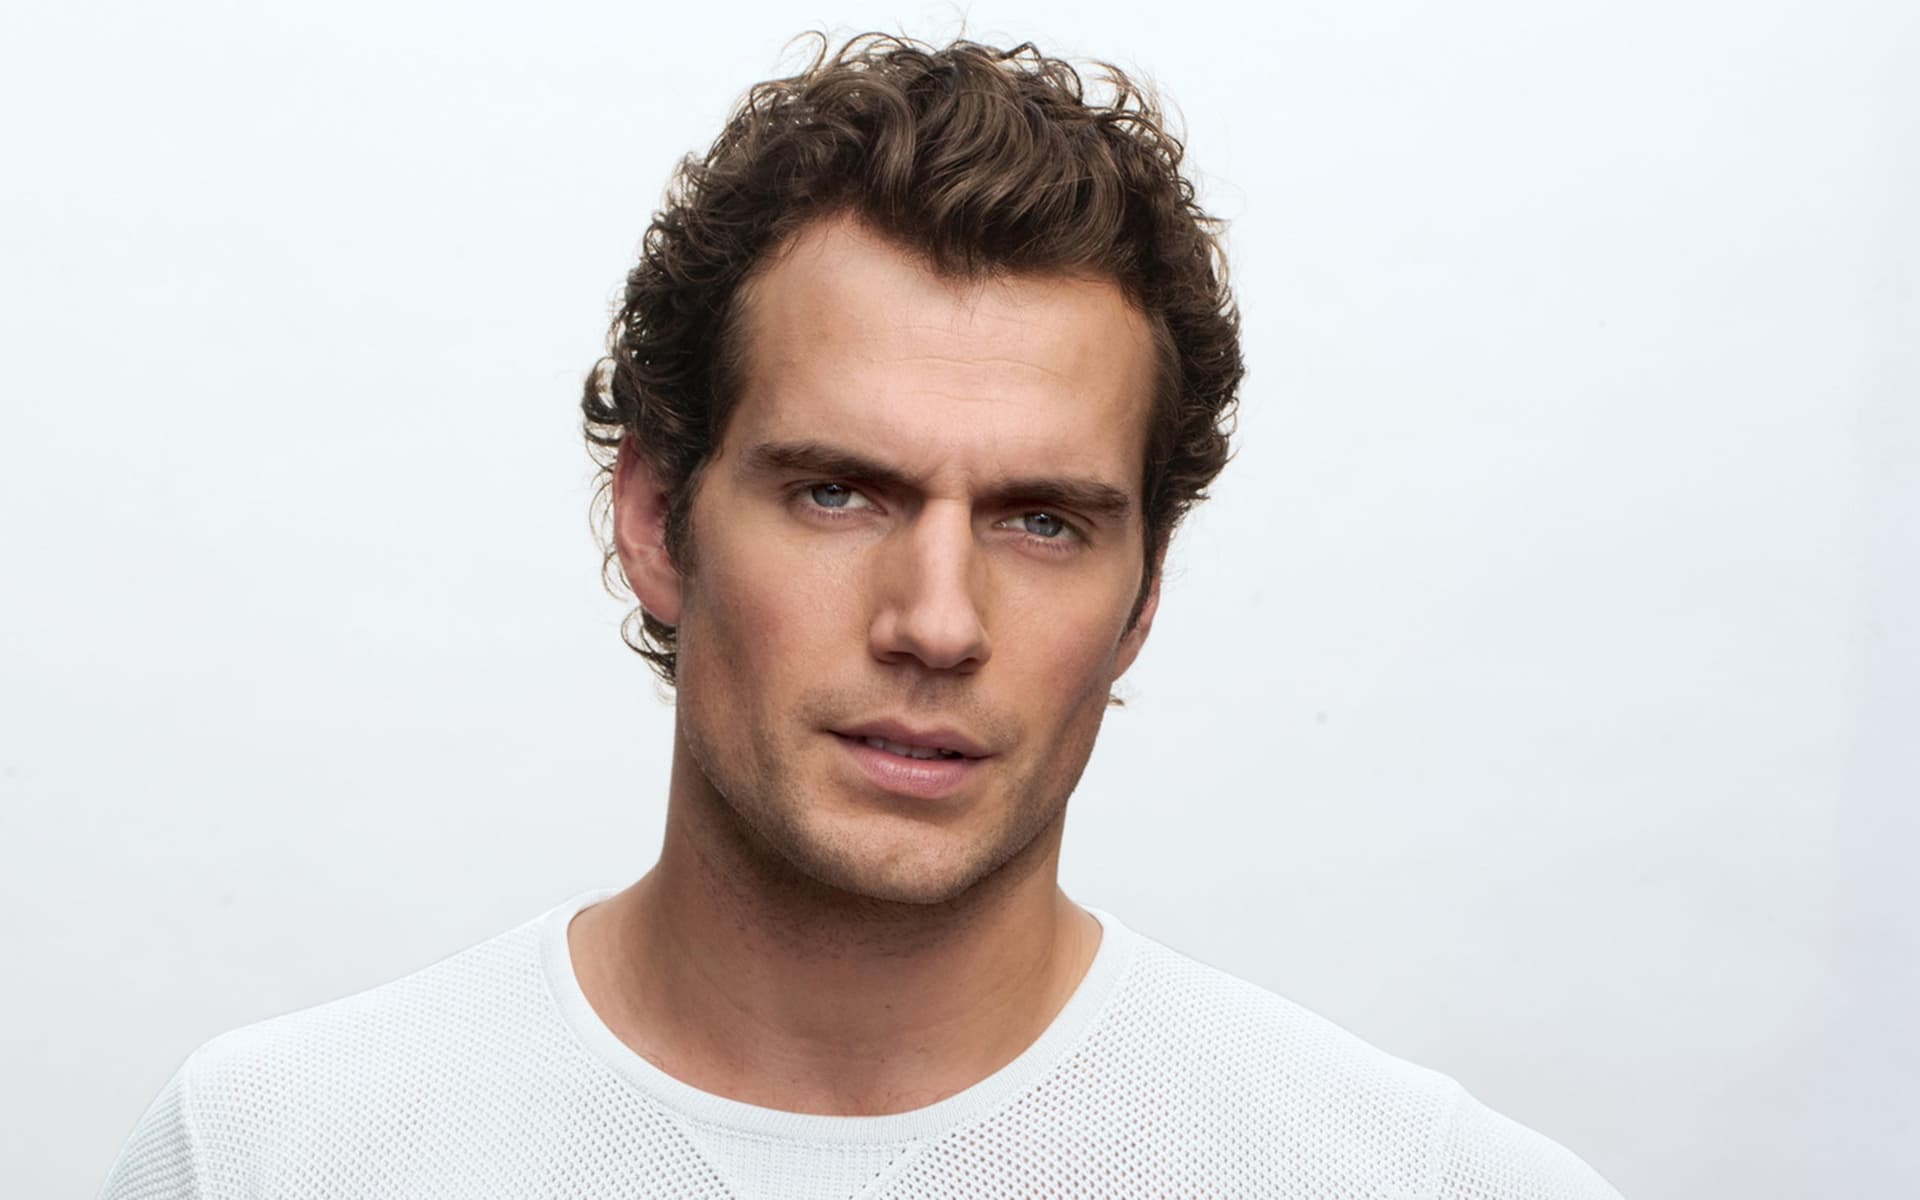 Superman Hd Wallpaper For Iphone 5 20 Henry Cavill Wallpapers High Quality Resolution Download